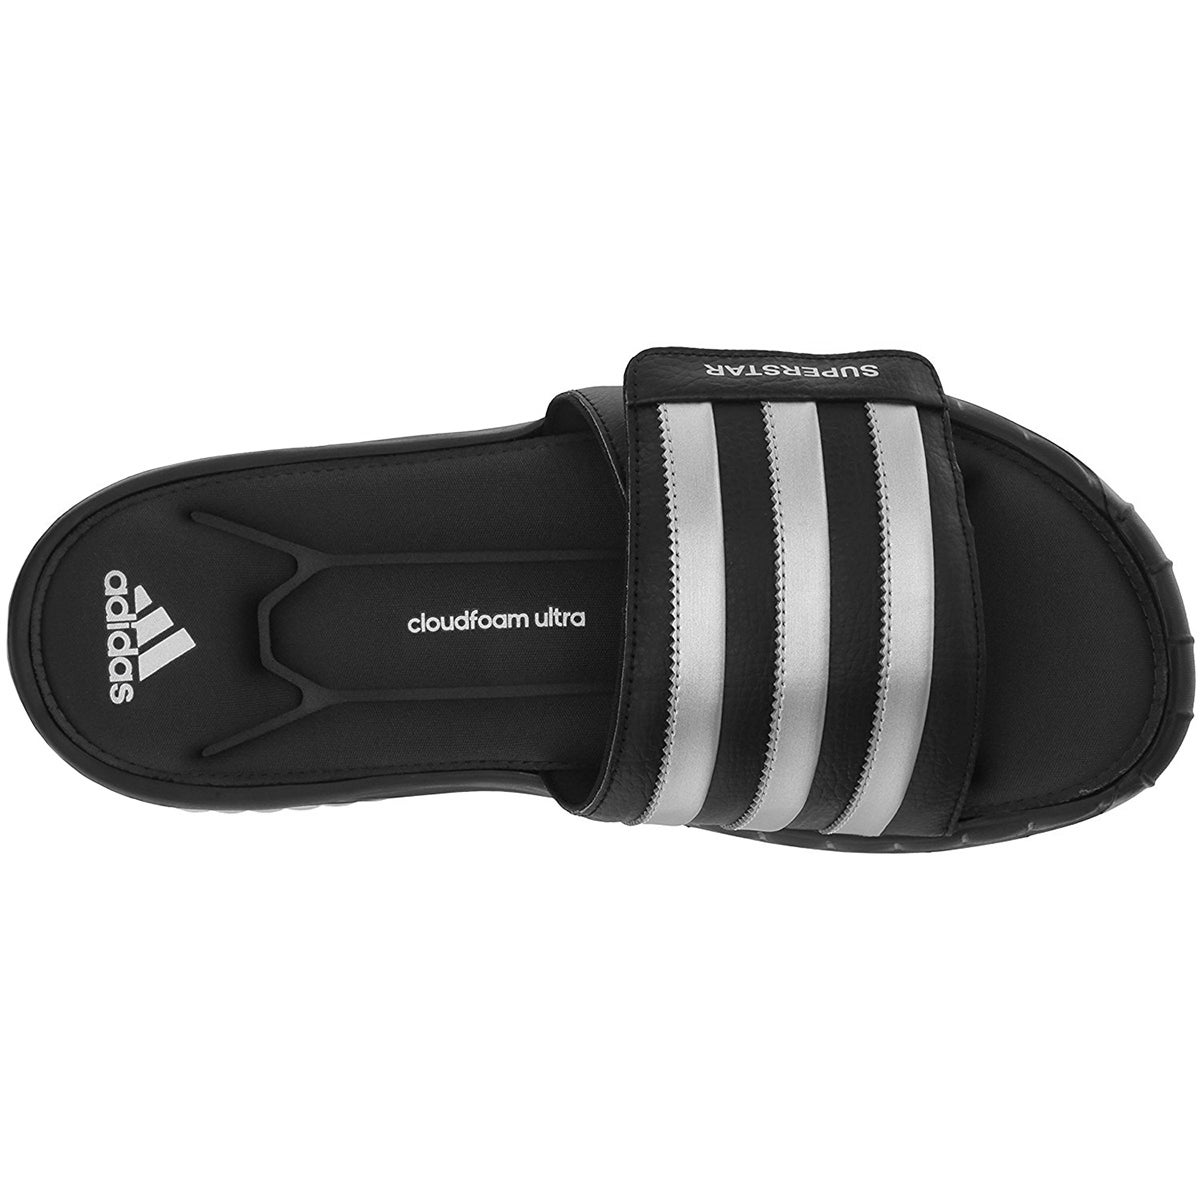 Shop Adidas Superstar 3G CloudFoam Athletic Slide Sandals - Black Silver -  Ships To Canada - Overstock - 19813253 1f14a19c7